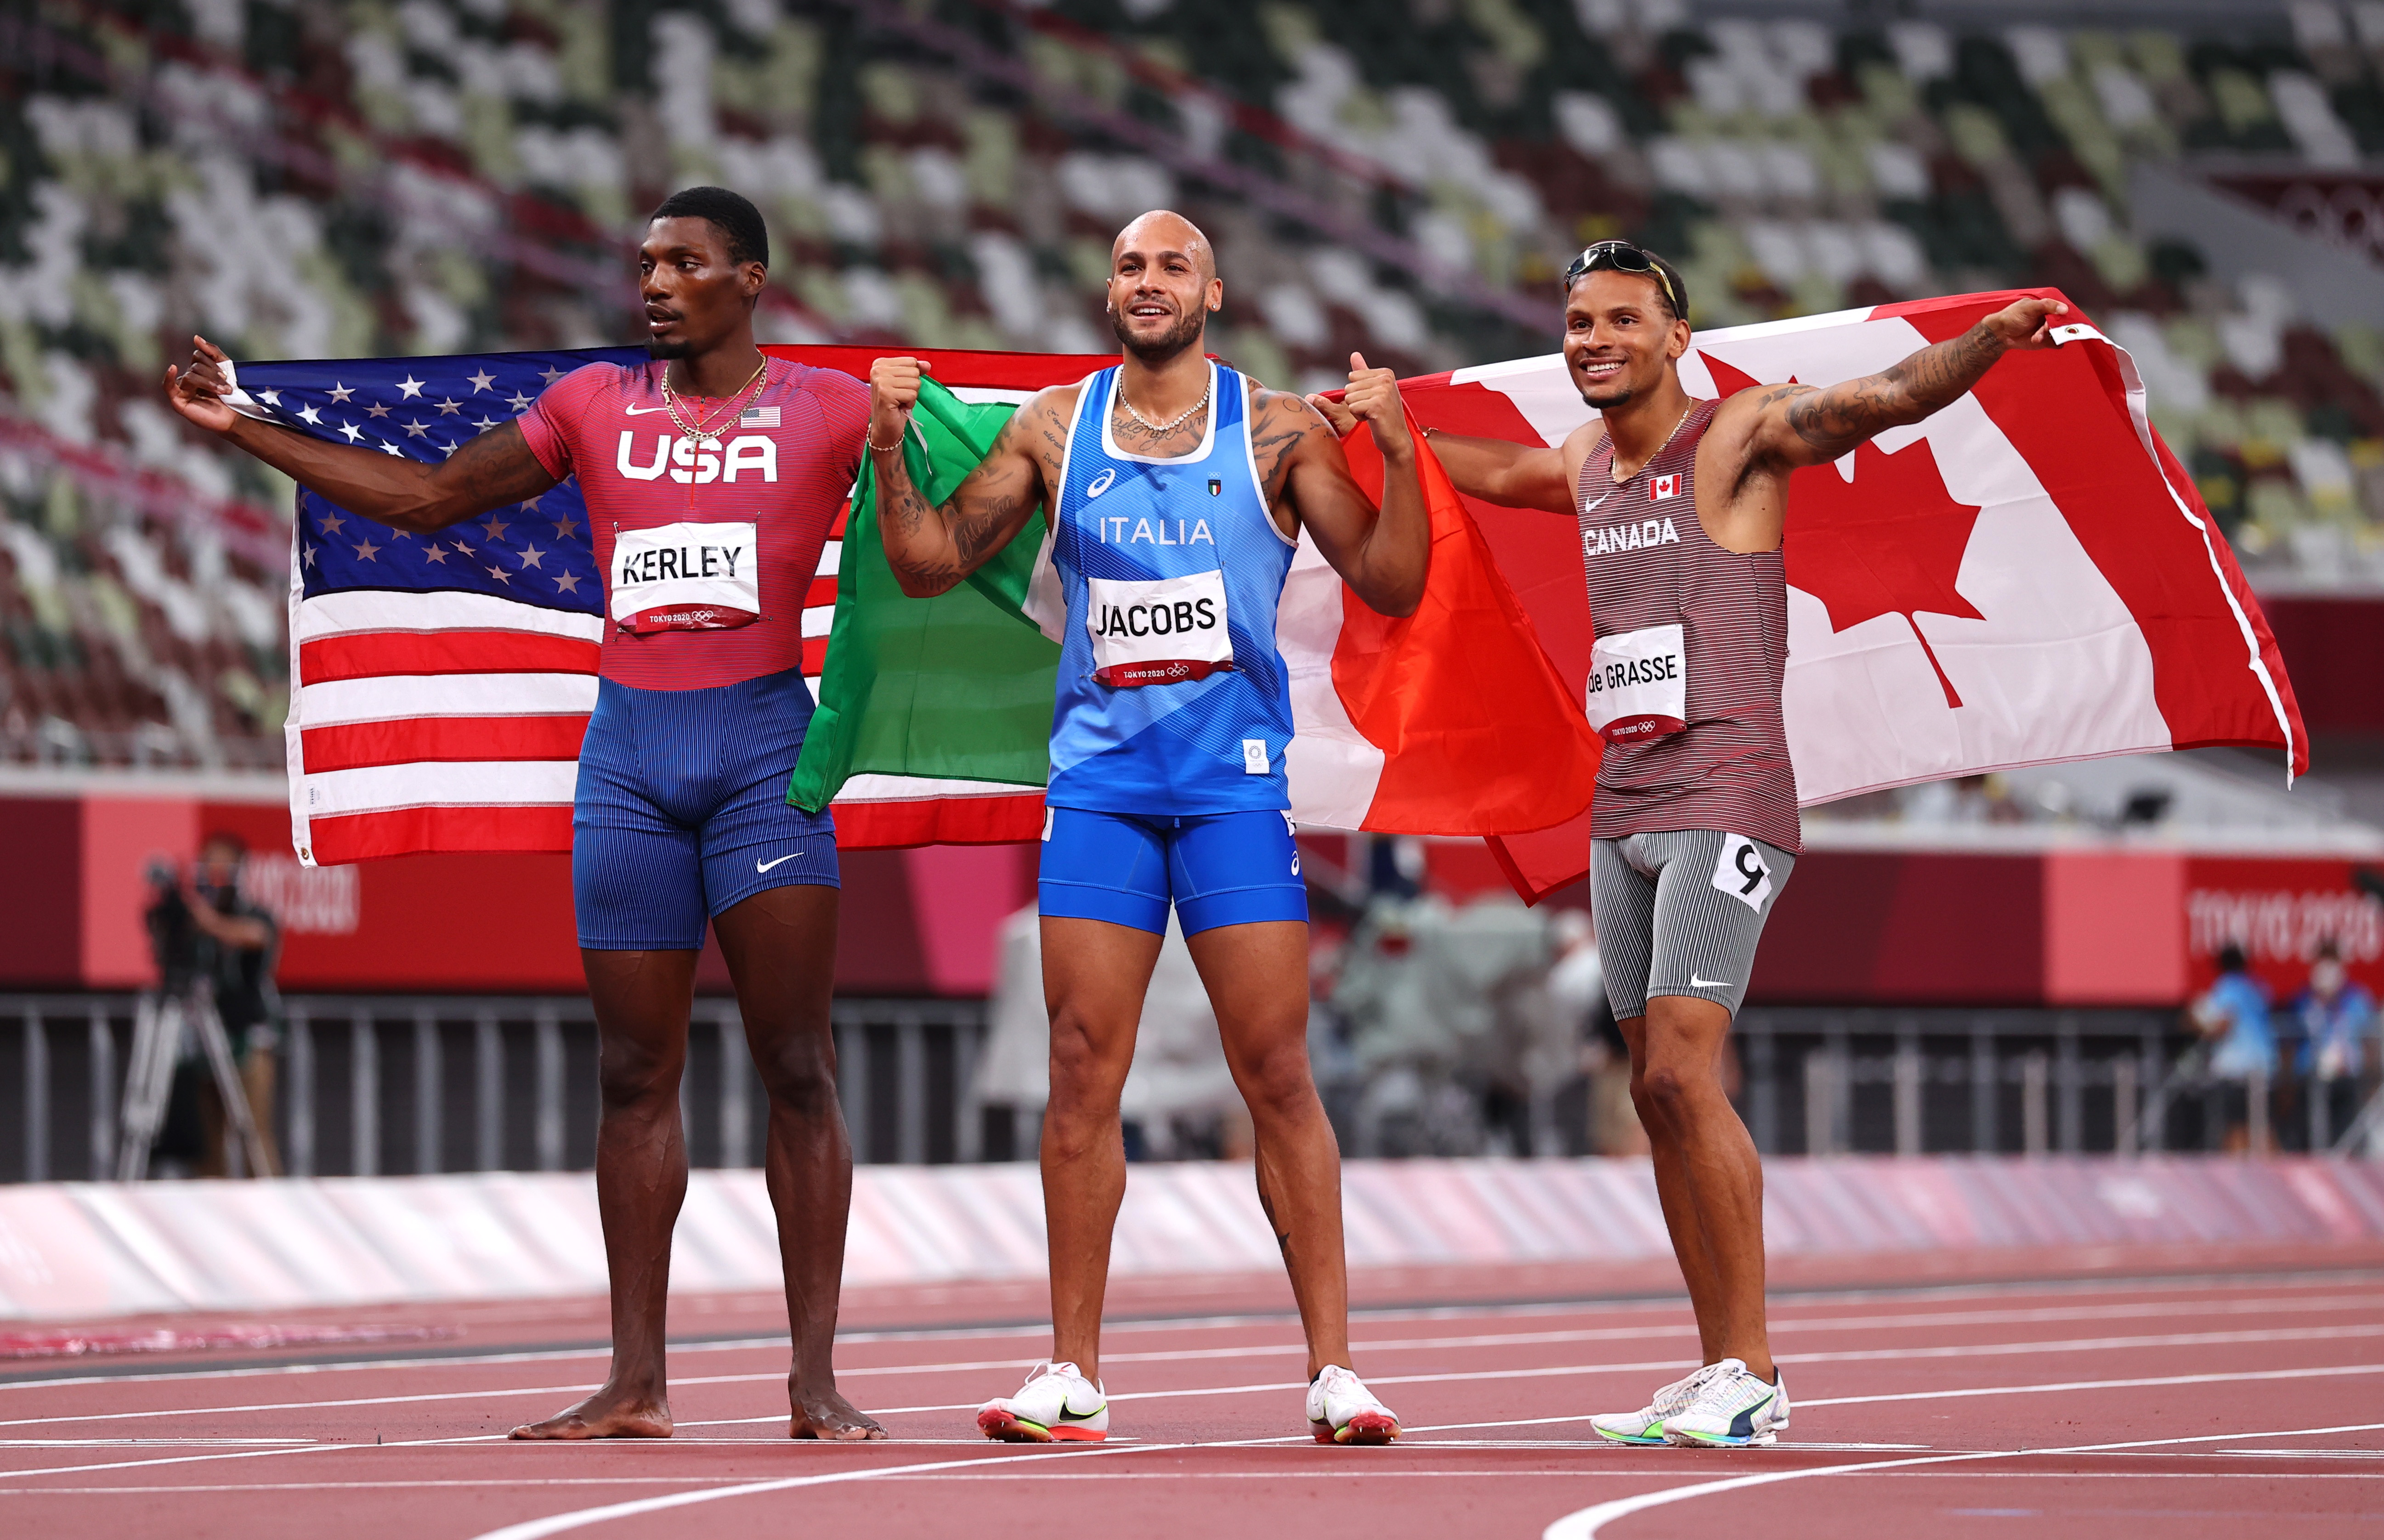 Tokyo 2020 Olympics - Athletics - Men's 100m - Final - OLS - Olympic Stadium, Tokyo, Japan - August 1, 2021. Gold medalist Lamont Marcell Jacobs of Italy celebrates with silver medalist Fred Kerley of the United States and bronze medalist Andre de Grasse REUTERS/Lucy Nicholson